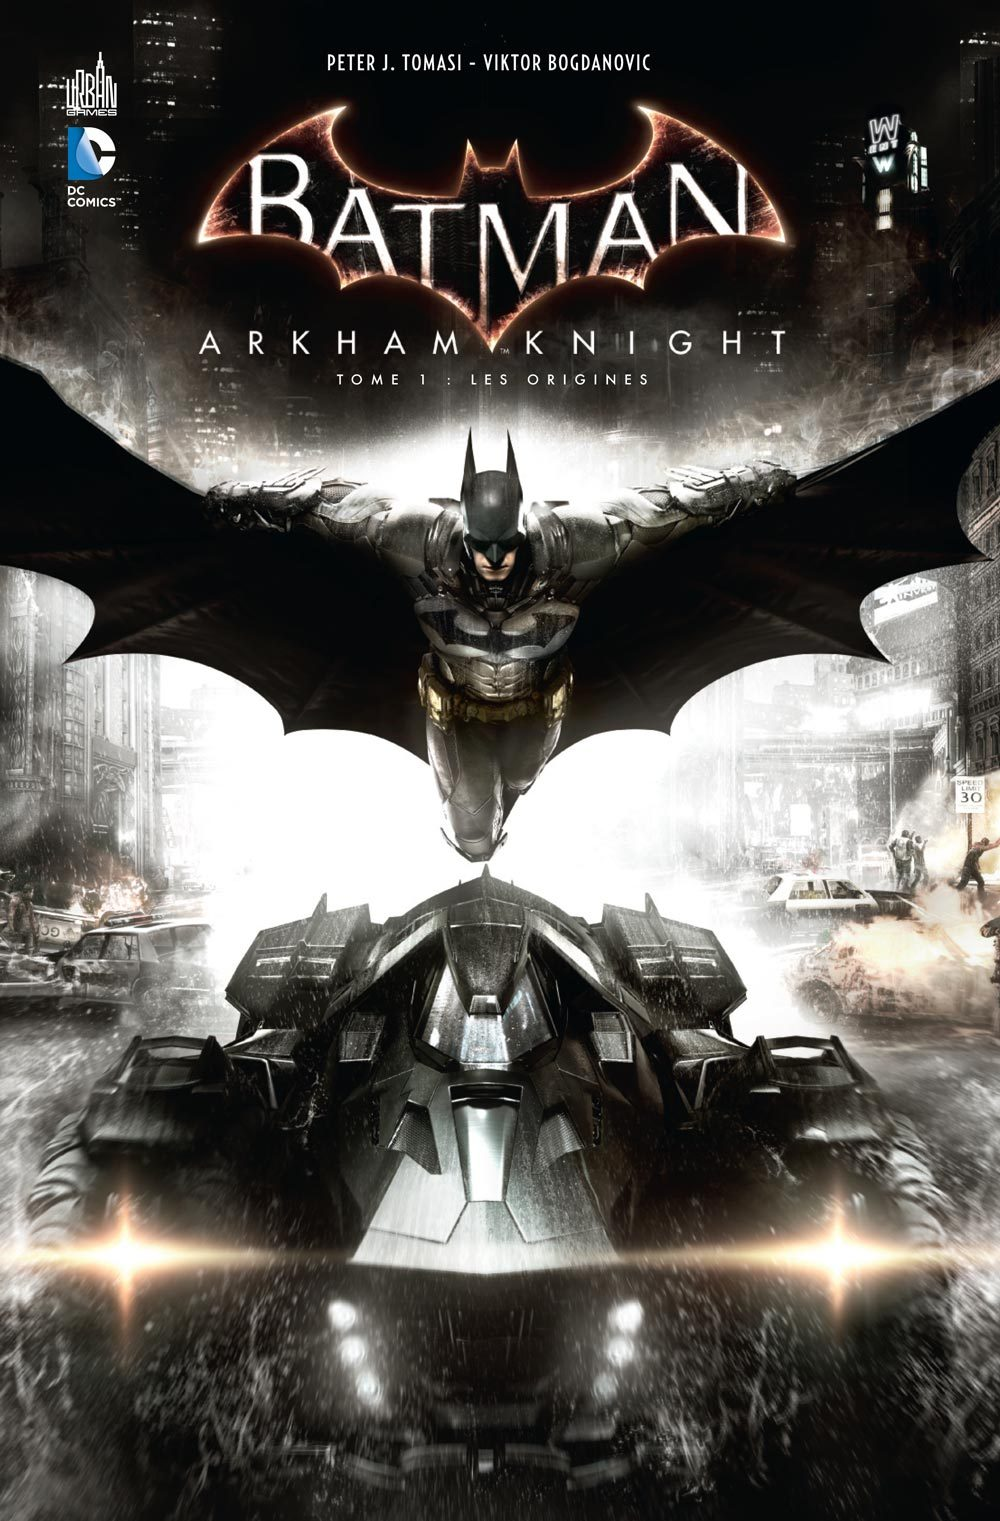 URBAN GAMES - BATMAN ARKHAM KNIGHT TOME 1 + SKIN BATMAN EXCLUSIF